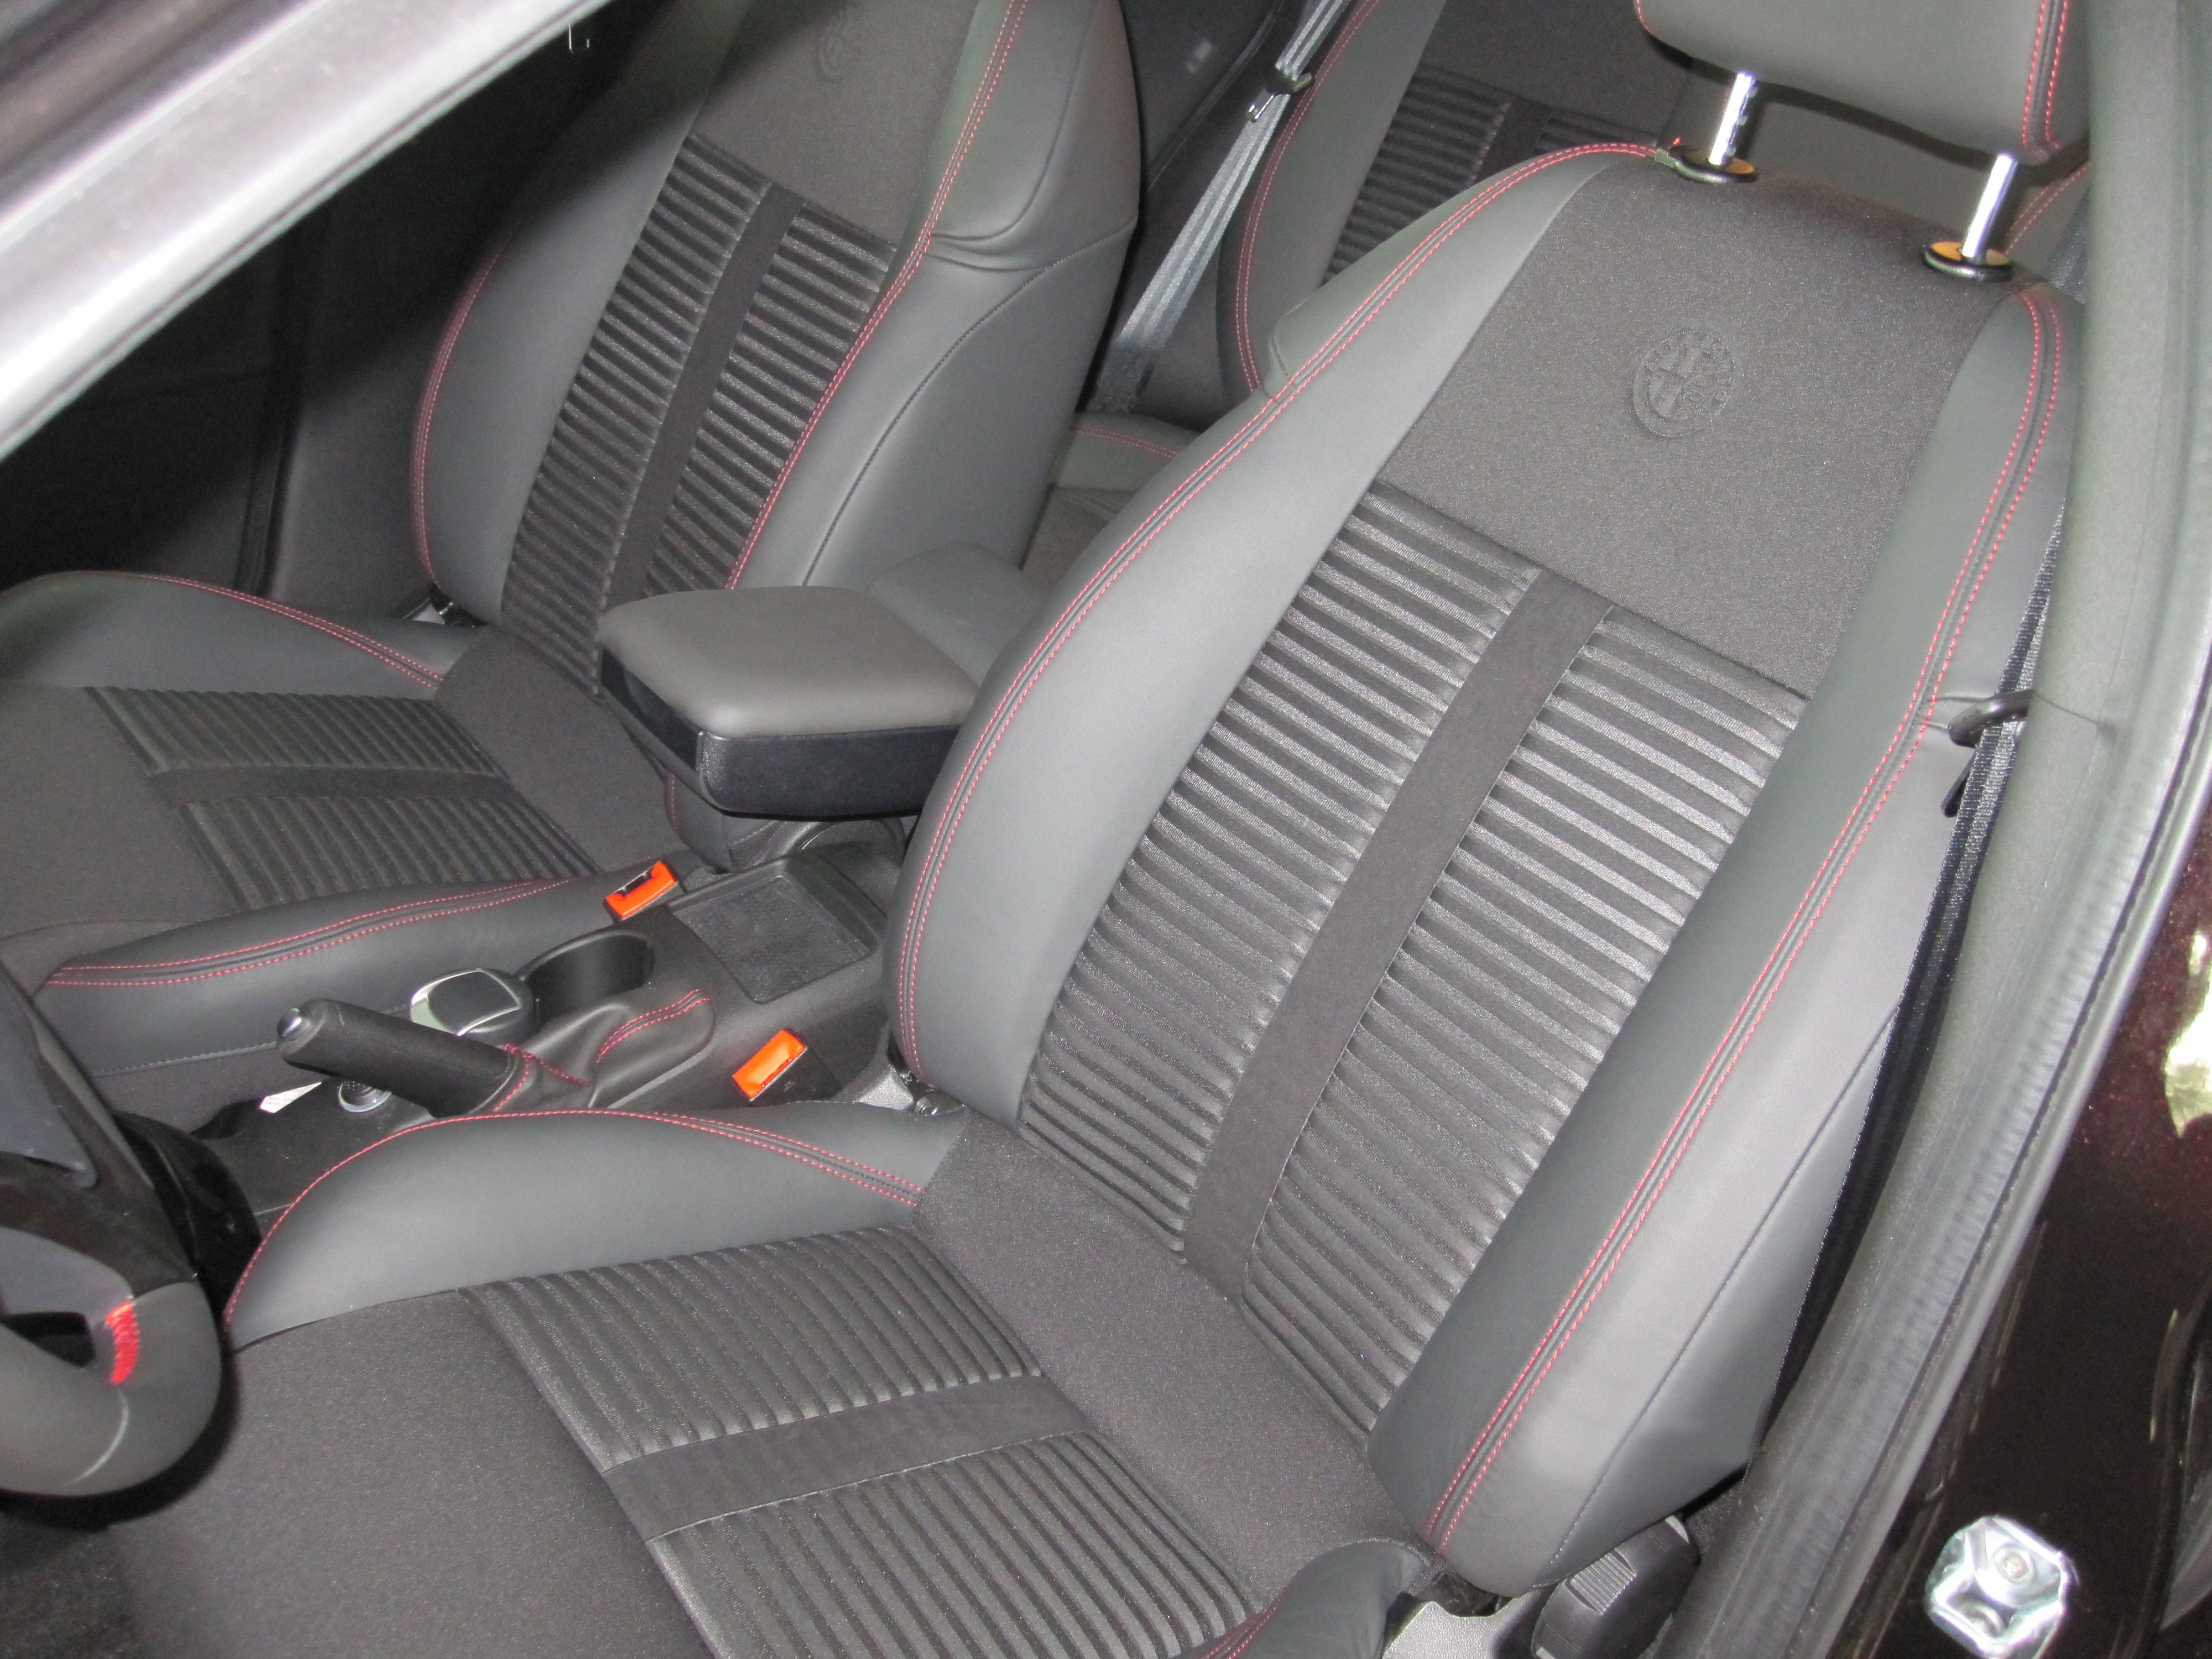 Cleaning Cars Fall Diy Products Clean Car Seats Smell